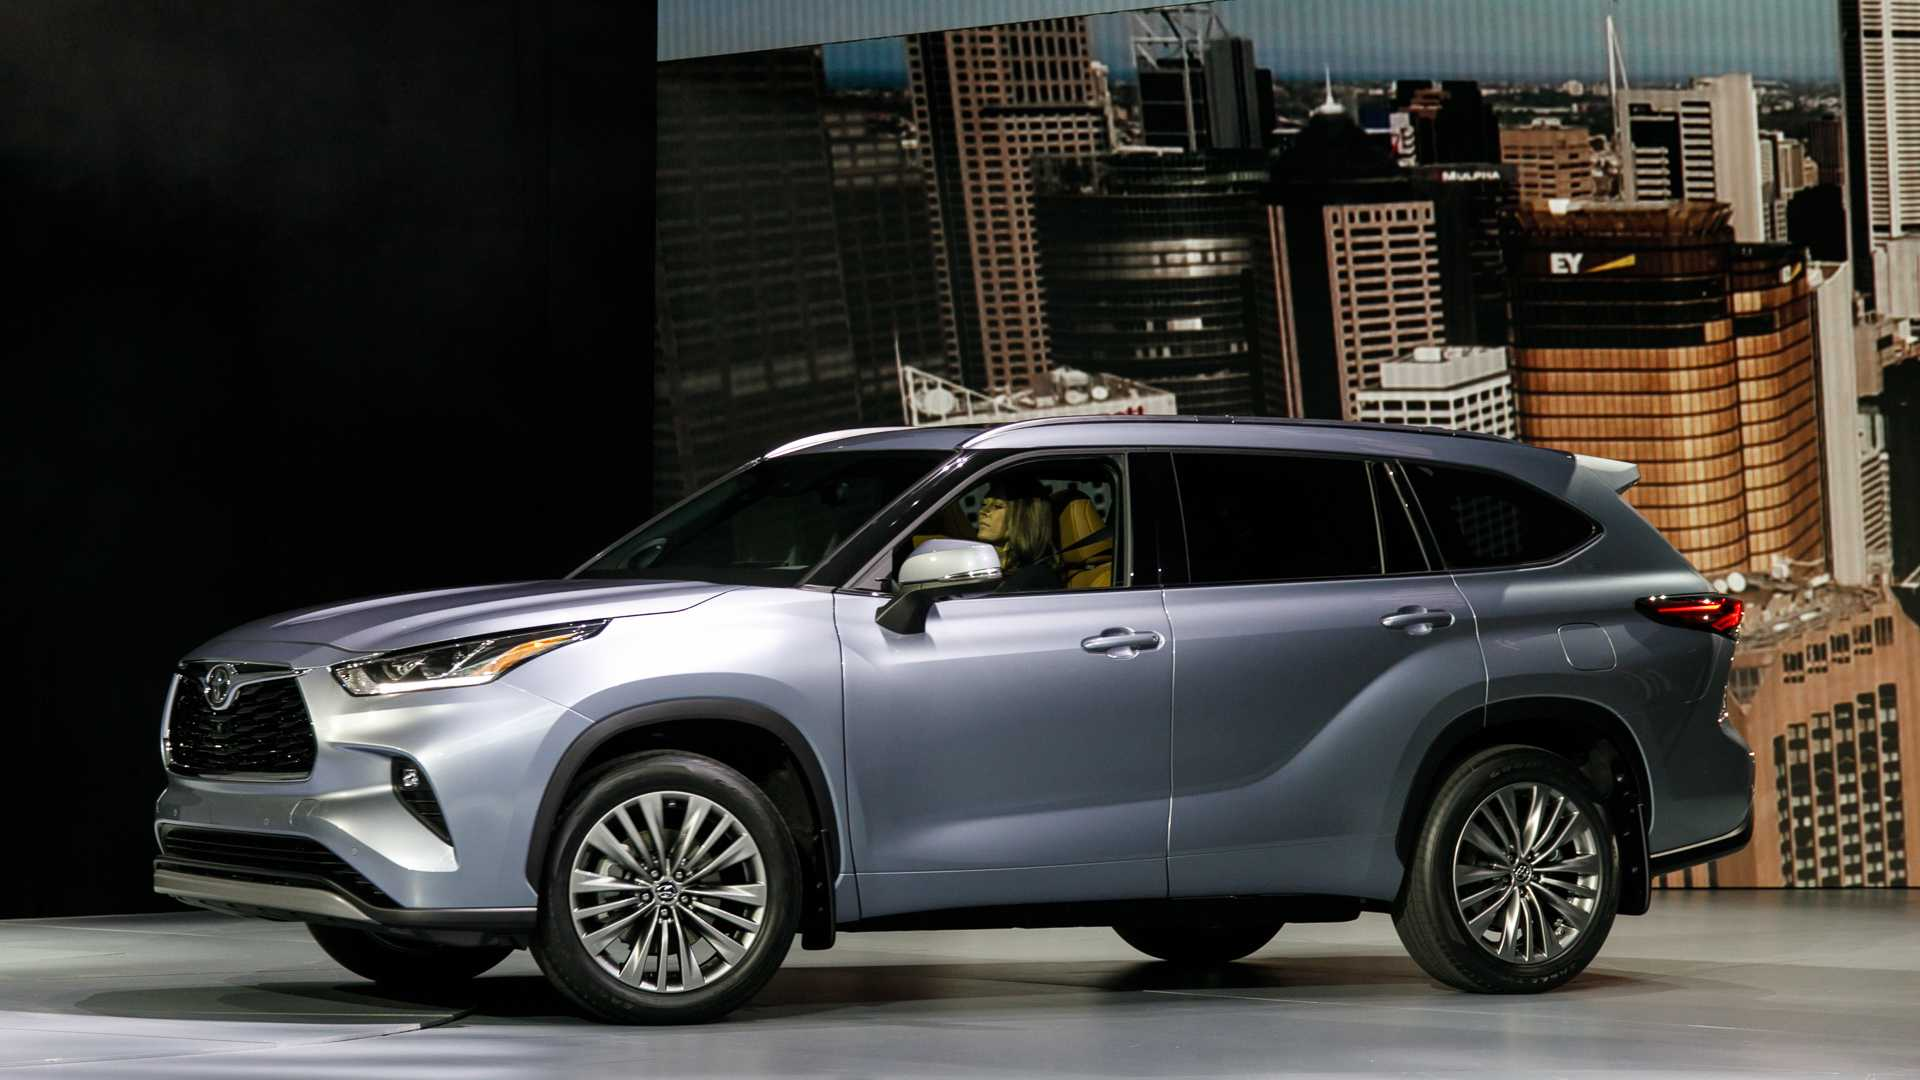 64 All New The Toyota Highlander 2019 Redesign Concept Pictures